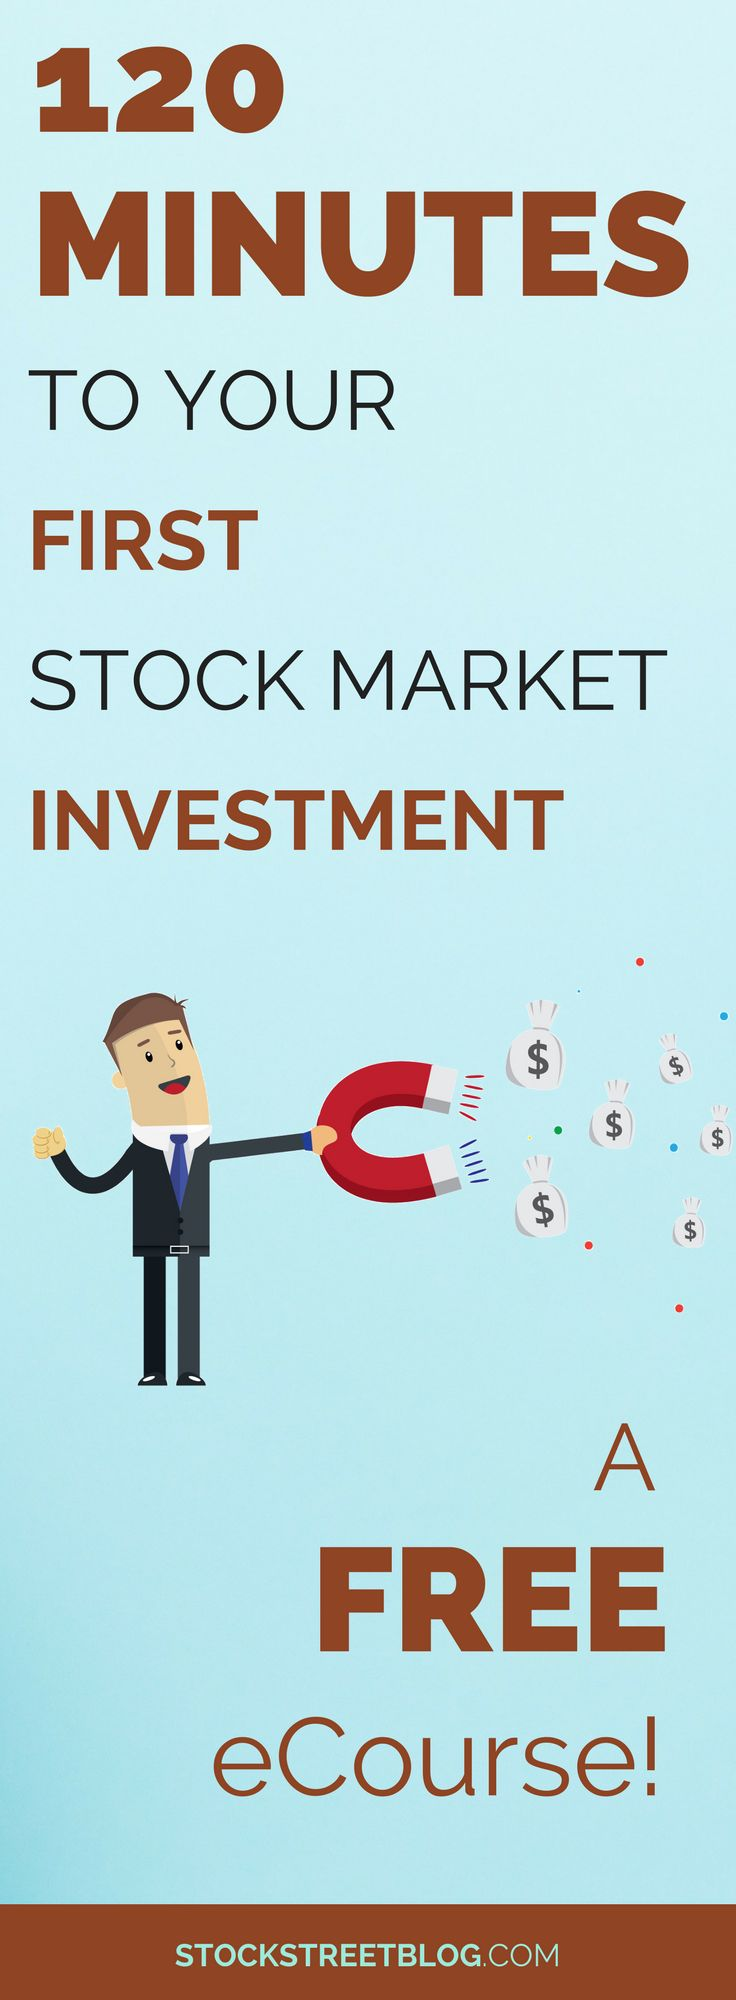 Do you find investing to be complicated? Are you not sure where to begin when investing your money? This FREE eCourse will help you make your first stock market investment with as little as $100! #money #savings #personalfinance #freebie